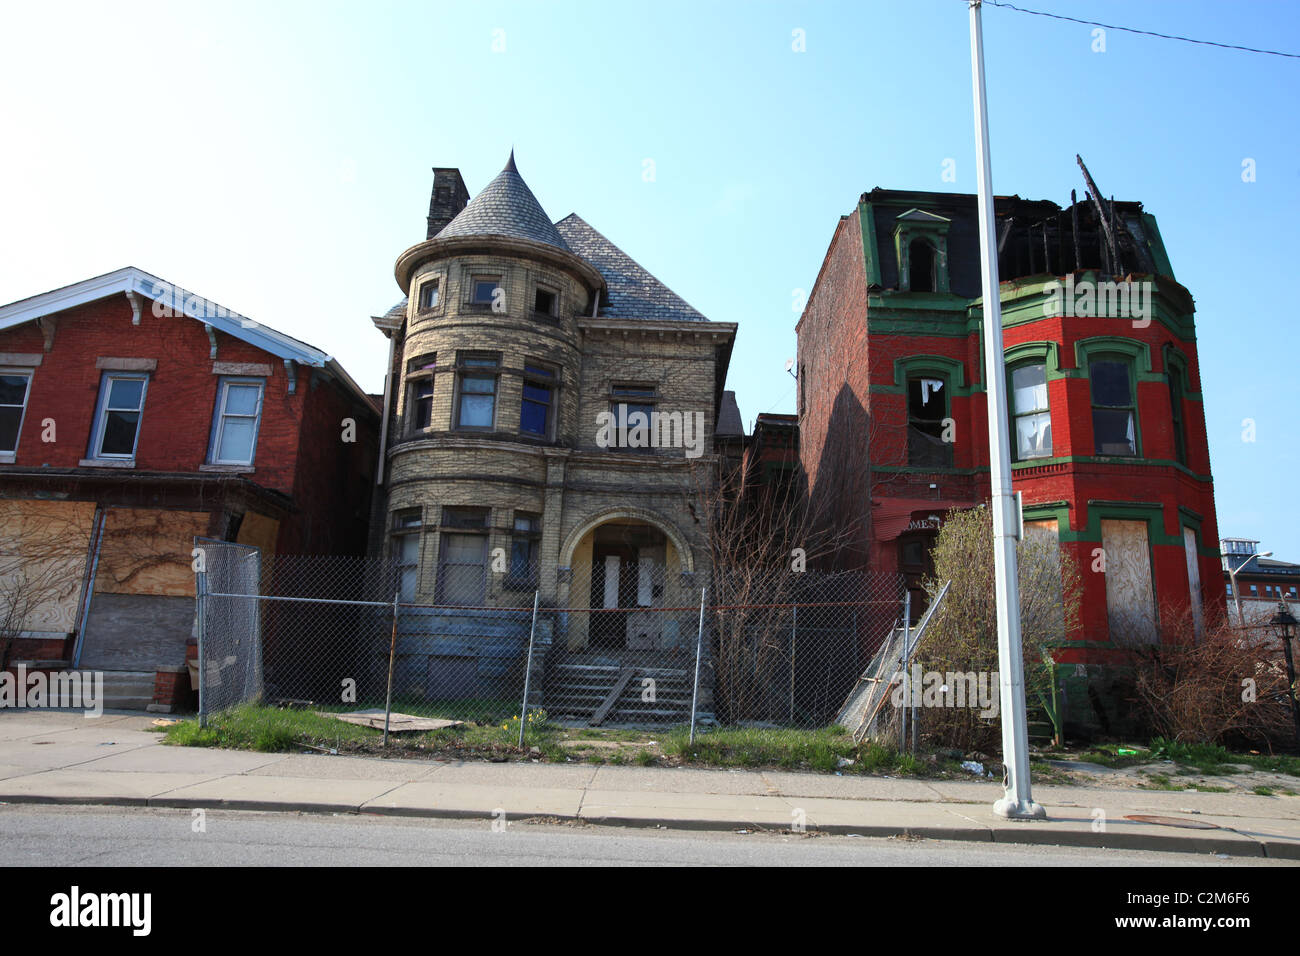 Creepy Houses High Resolution Stock Photography And Images Alamy